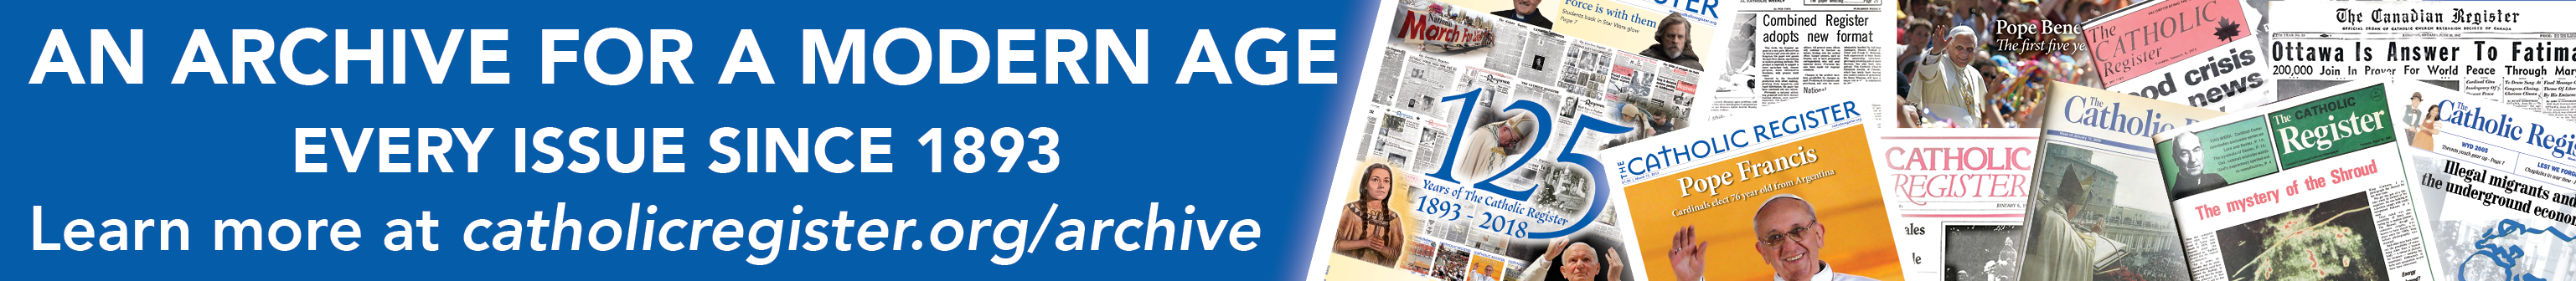 An archive for the modern age. Every issue since 1893. Learn more at catholicregister.org/archive